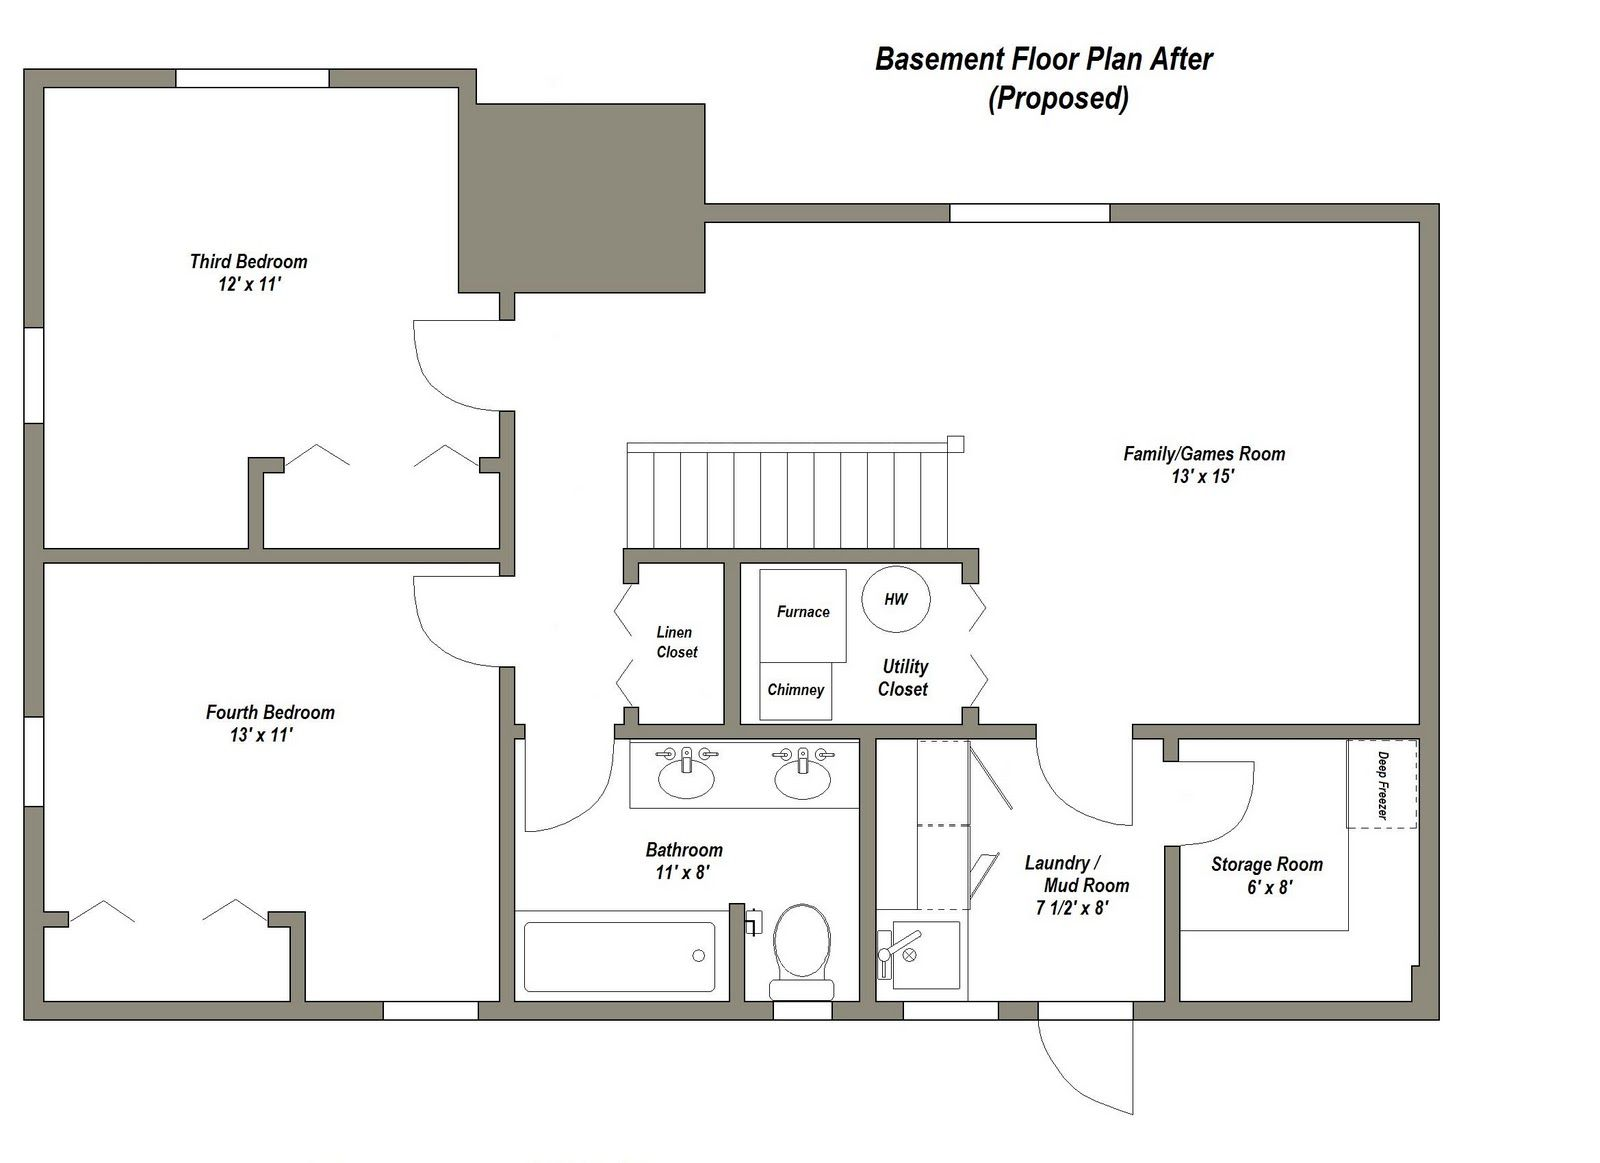 finished basement plans ideas photo - 3